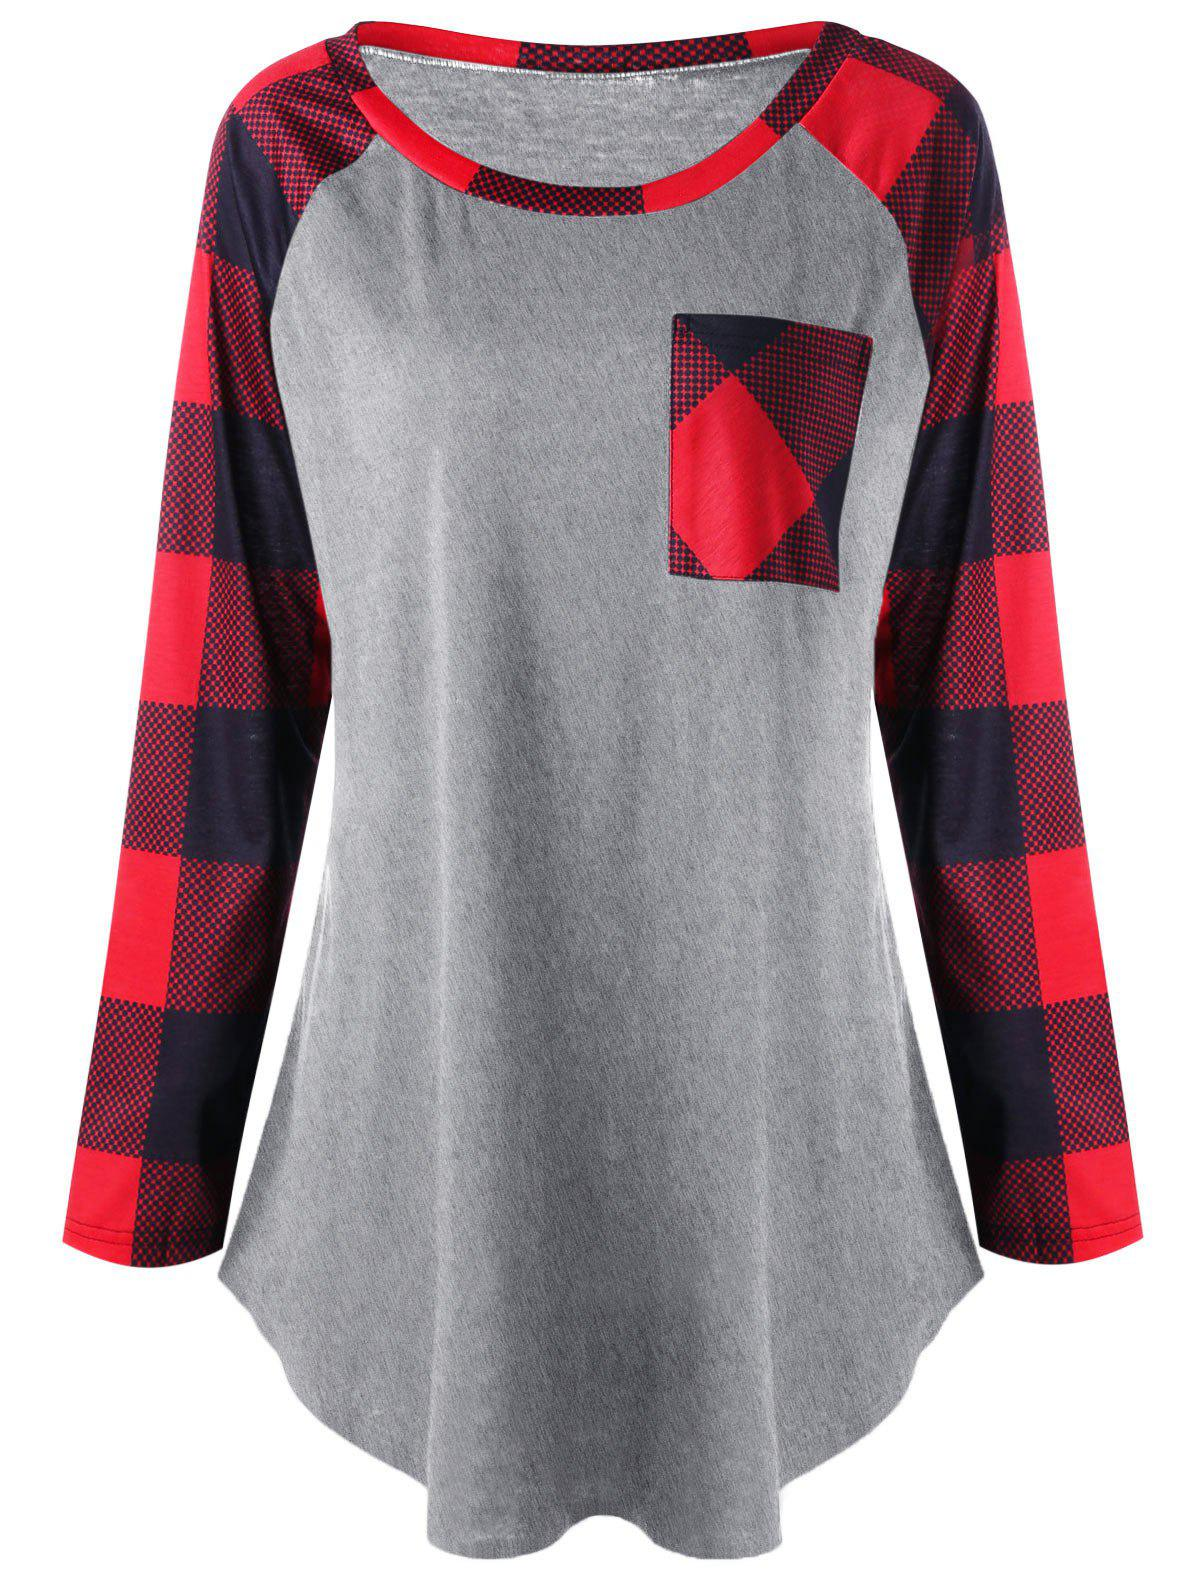 Plus Size Single Pocket Plaid T-shirt - HEATHER GRAY 2XL